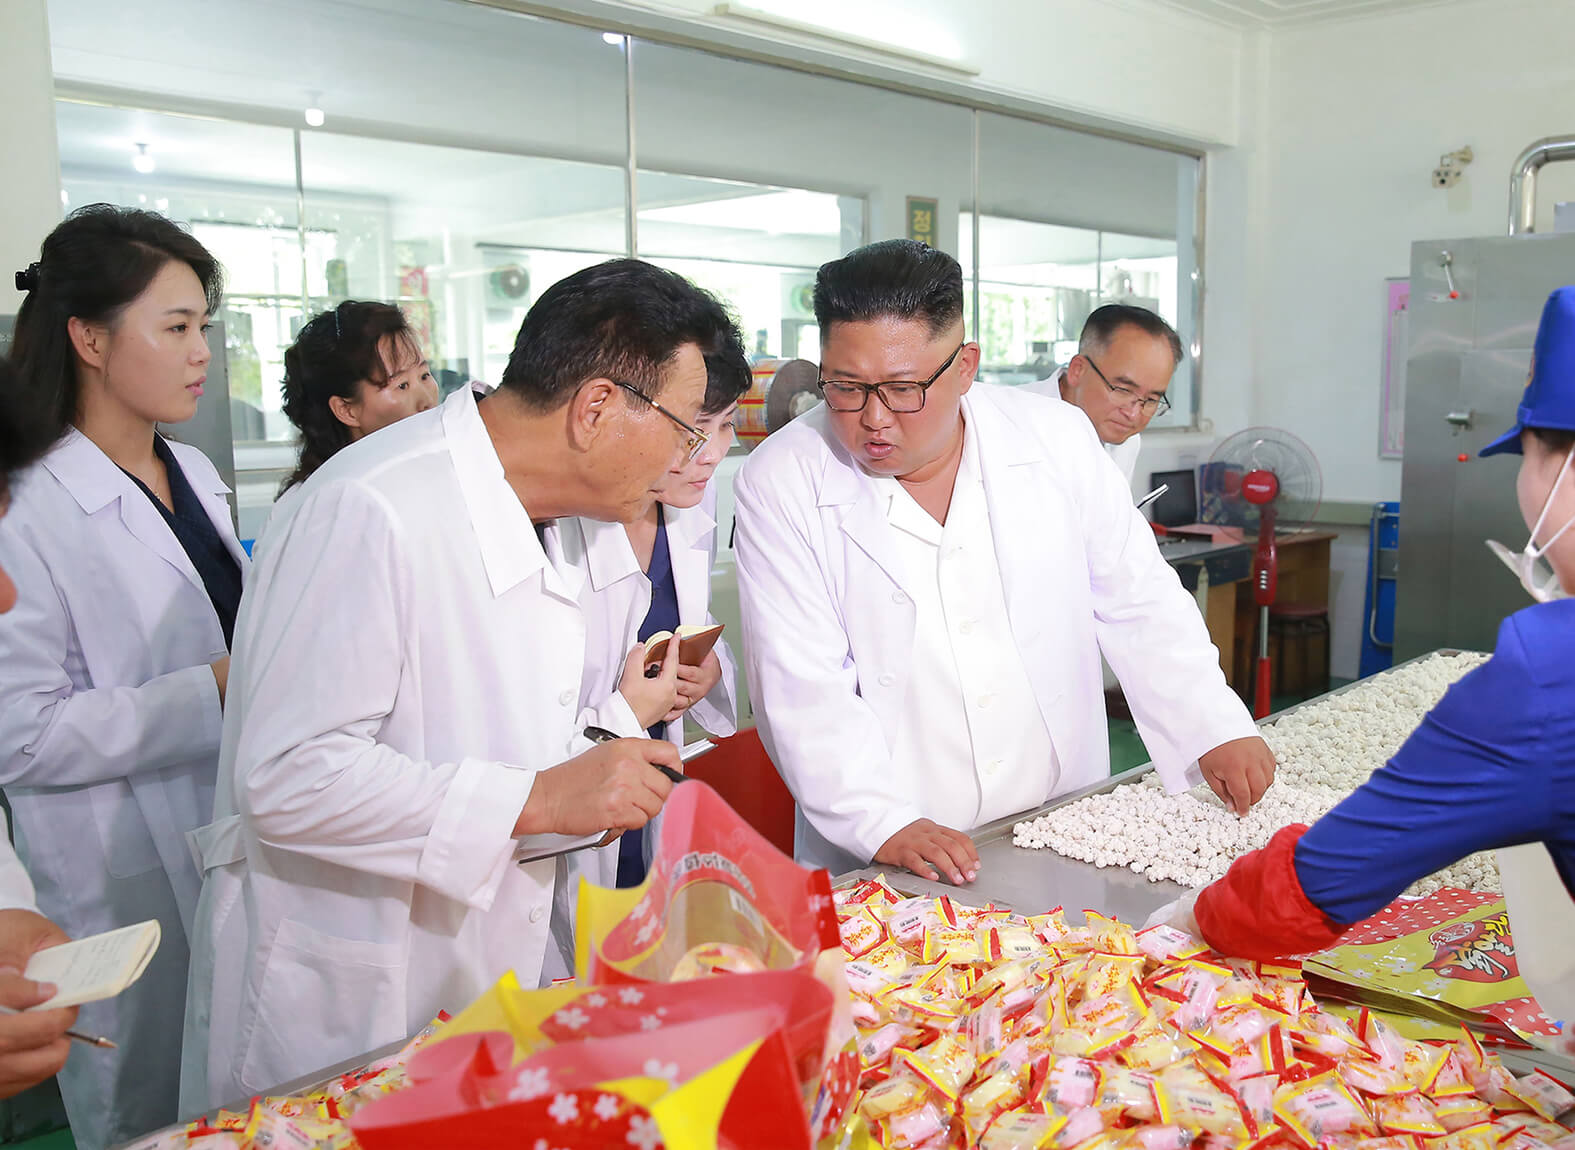 Kim Jong Un visiting the Songdowon General Foodstuff Factory in July 2018